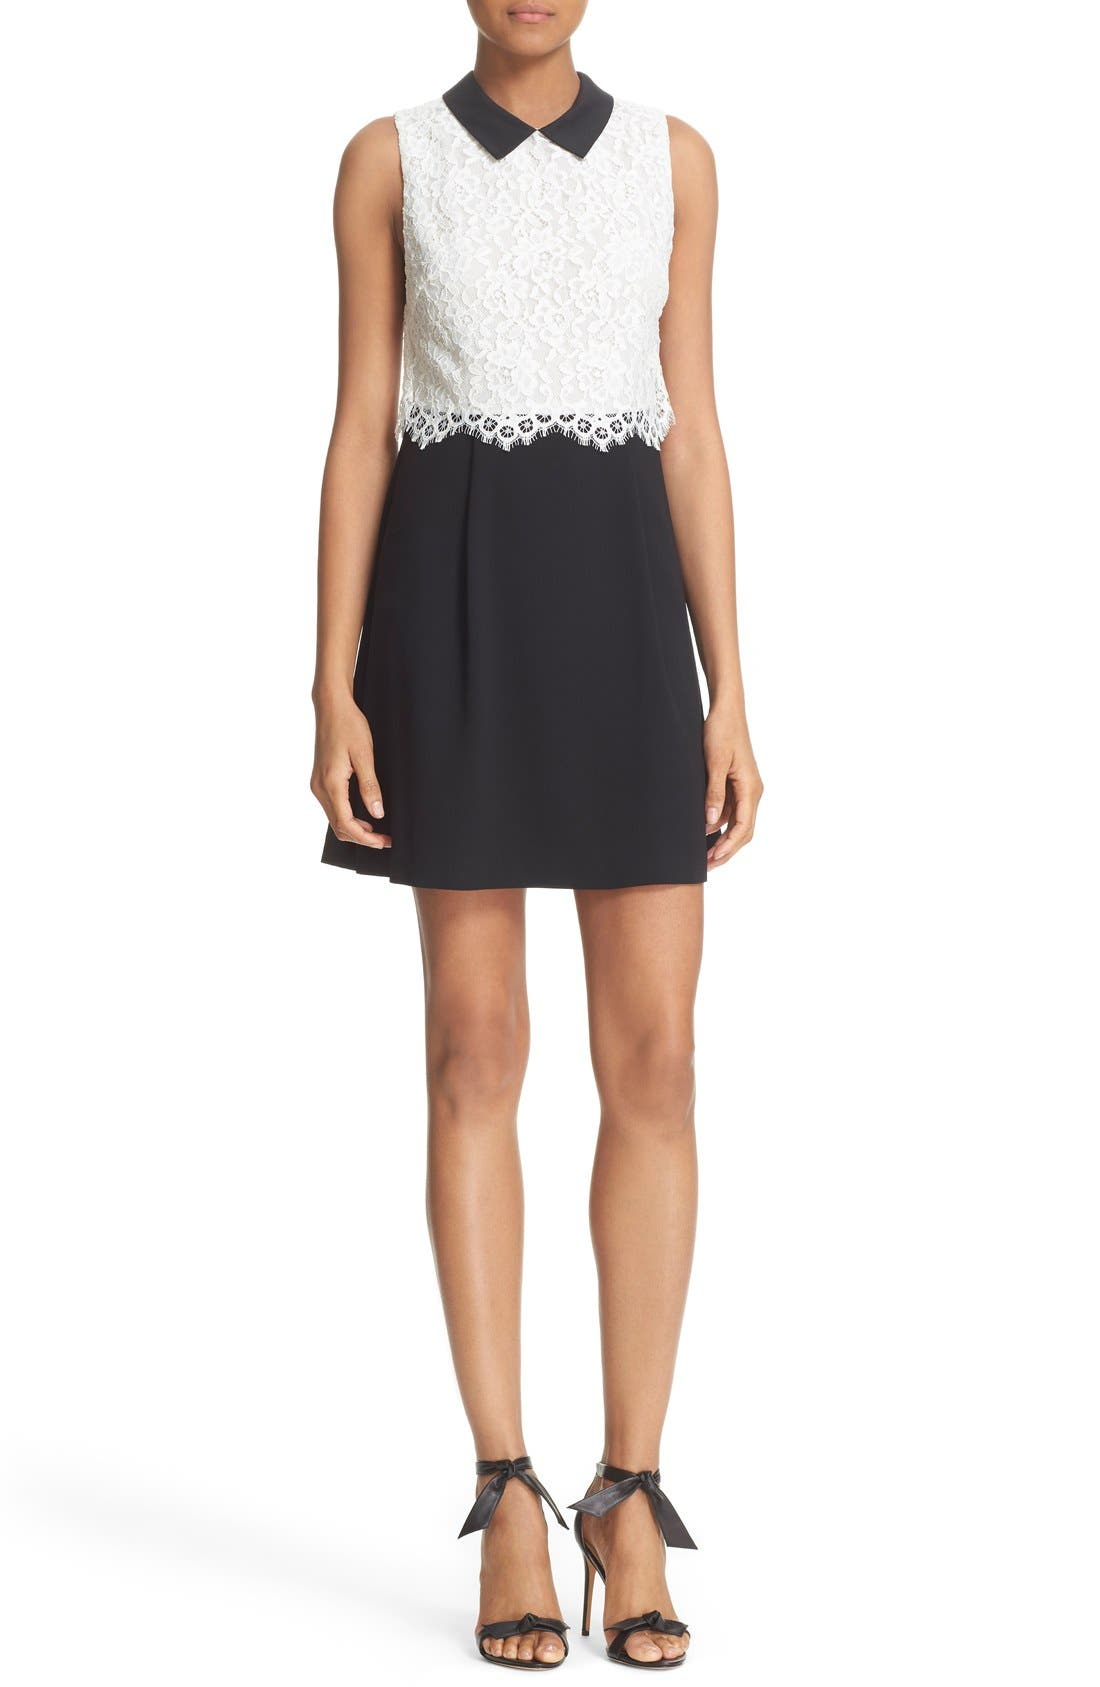 Main Image - Alice + Olivia 'Desra' Two-Tone Lace Bodice Minidress